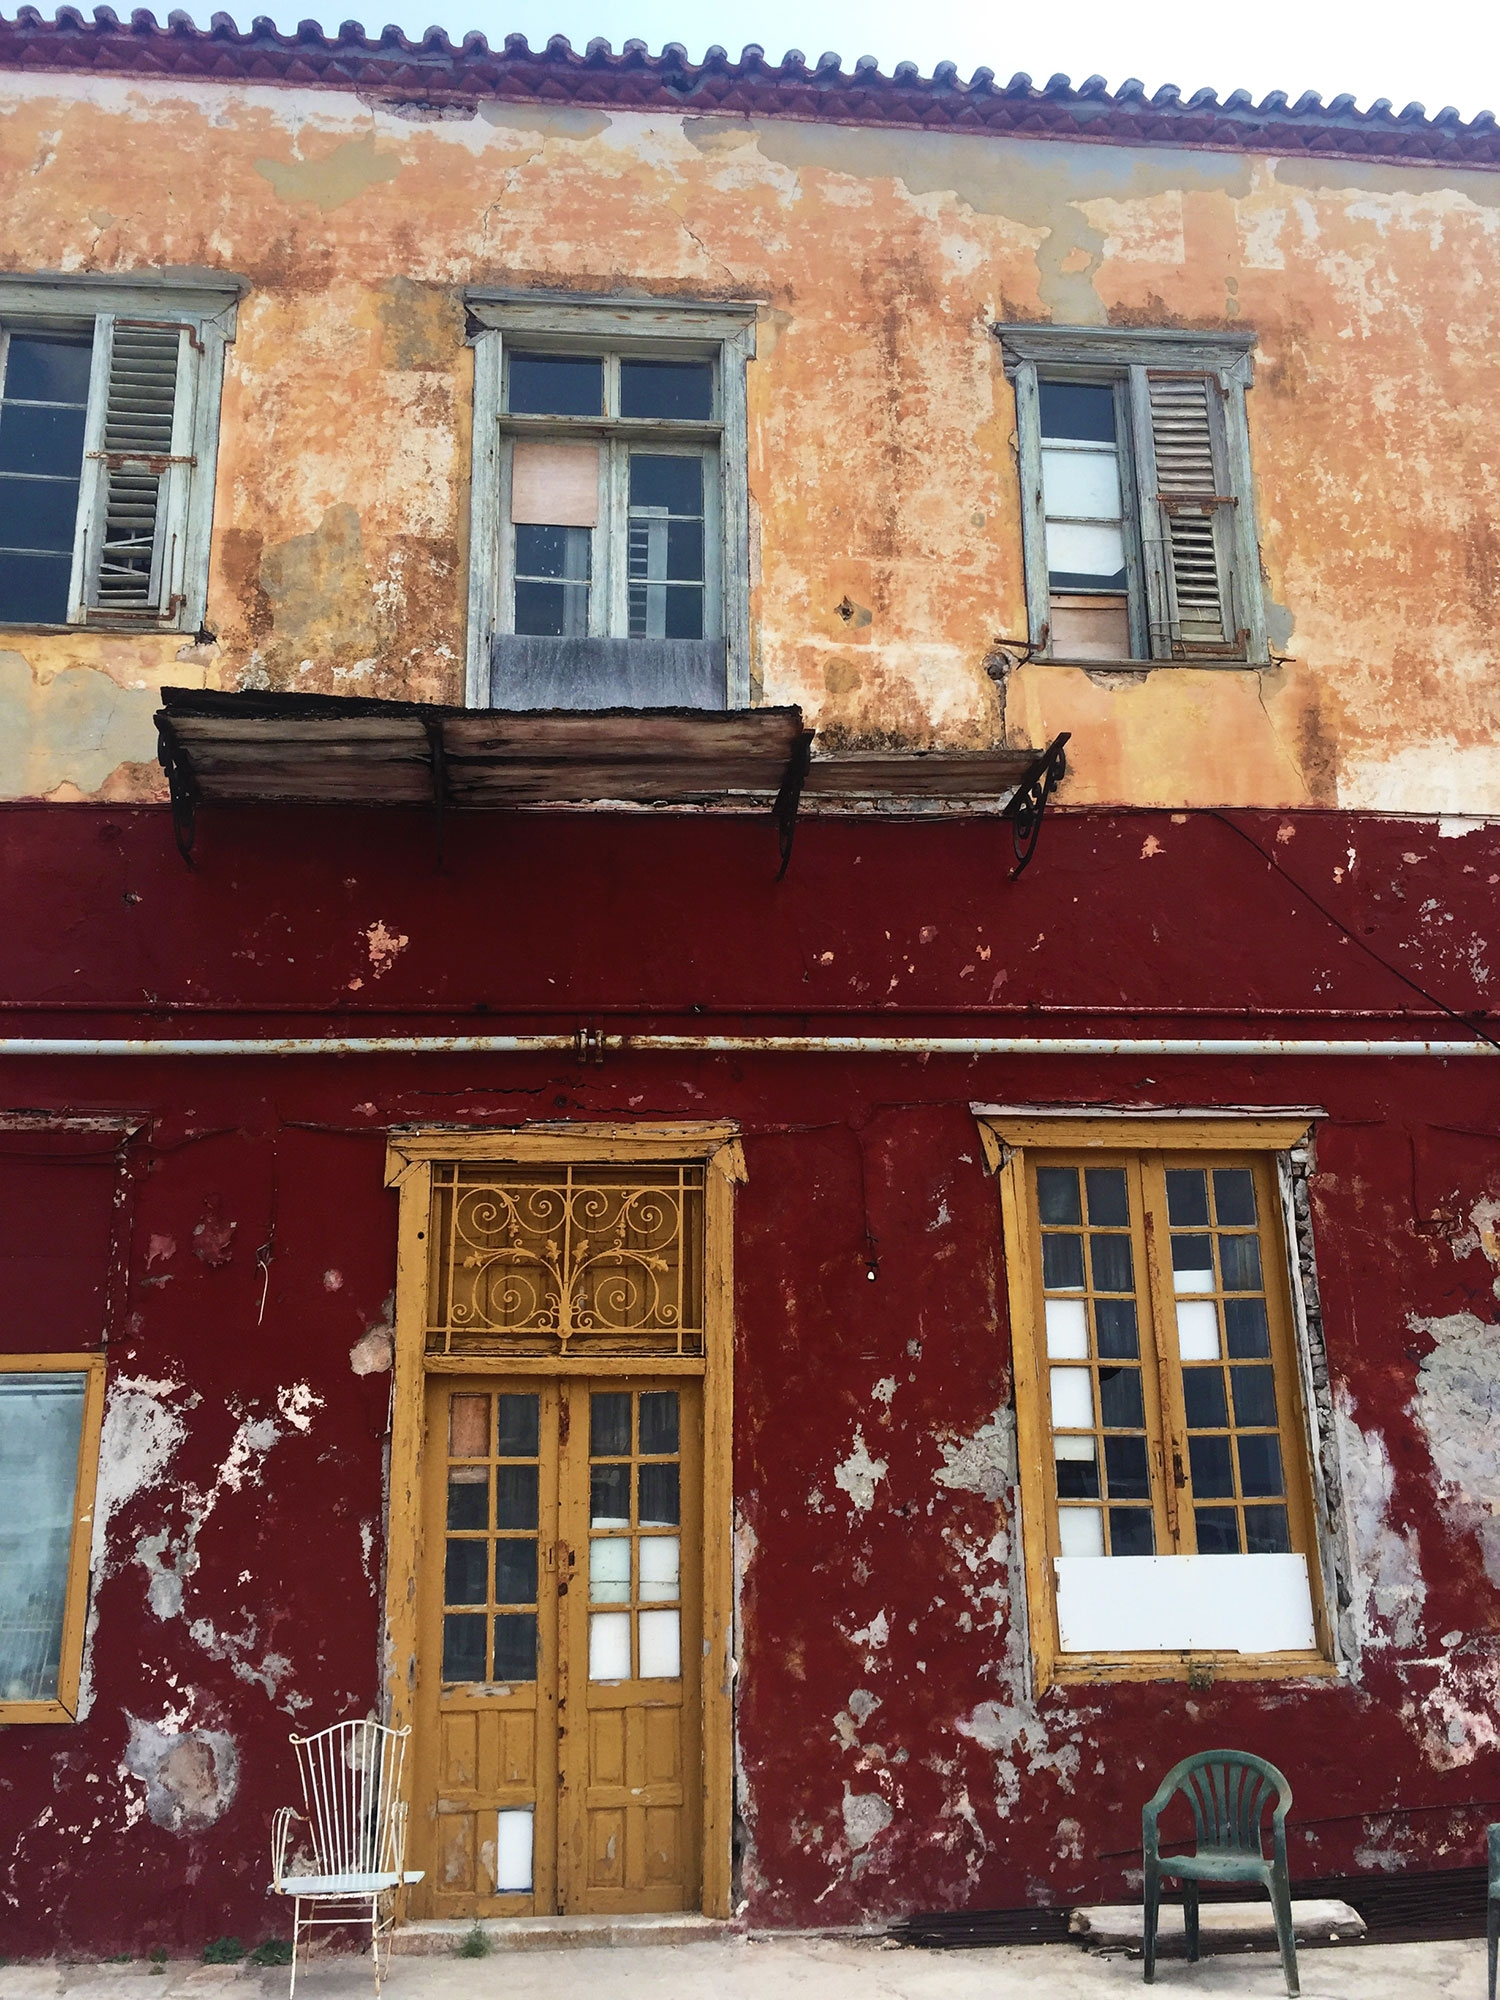 An old building with earthy colours and textures